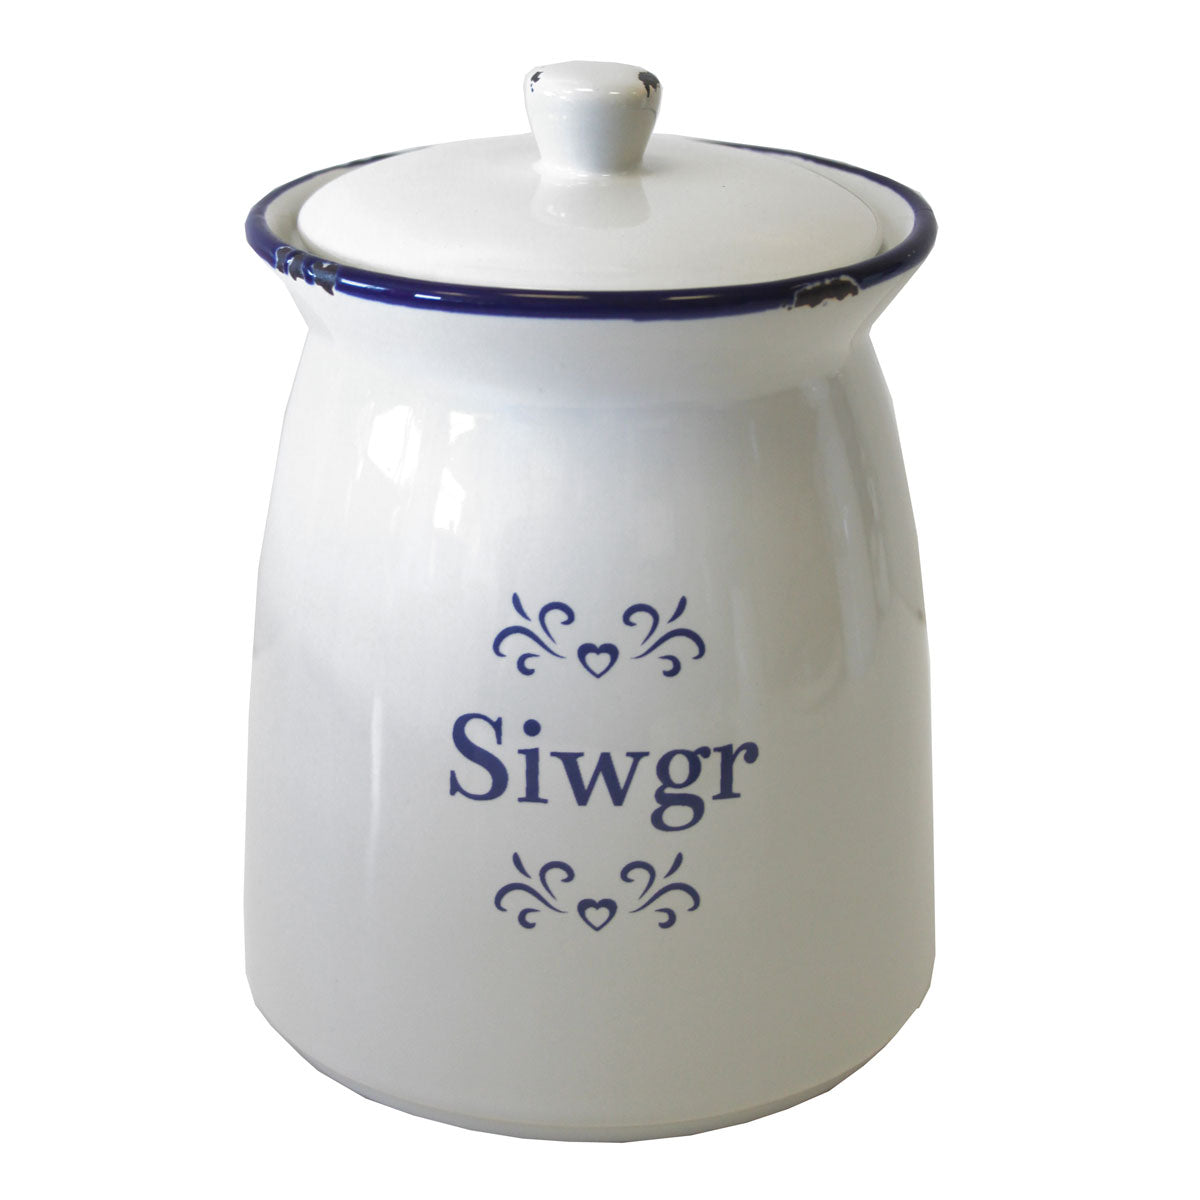 Storage Jar - Blue & White Ceramic - Siwgr - Sugar-The Welsh Gift Shop